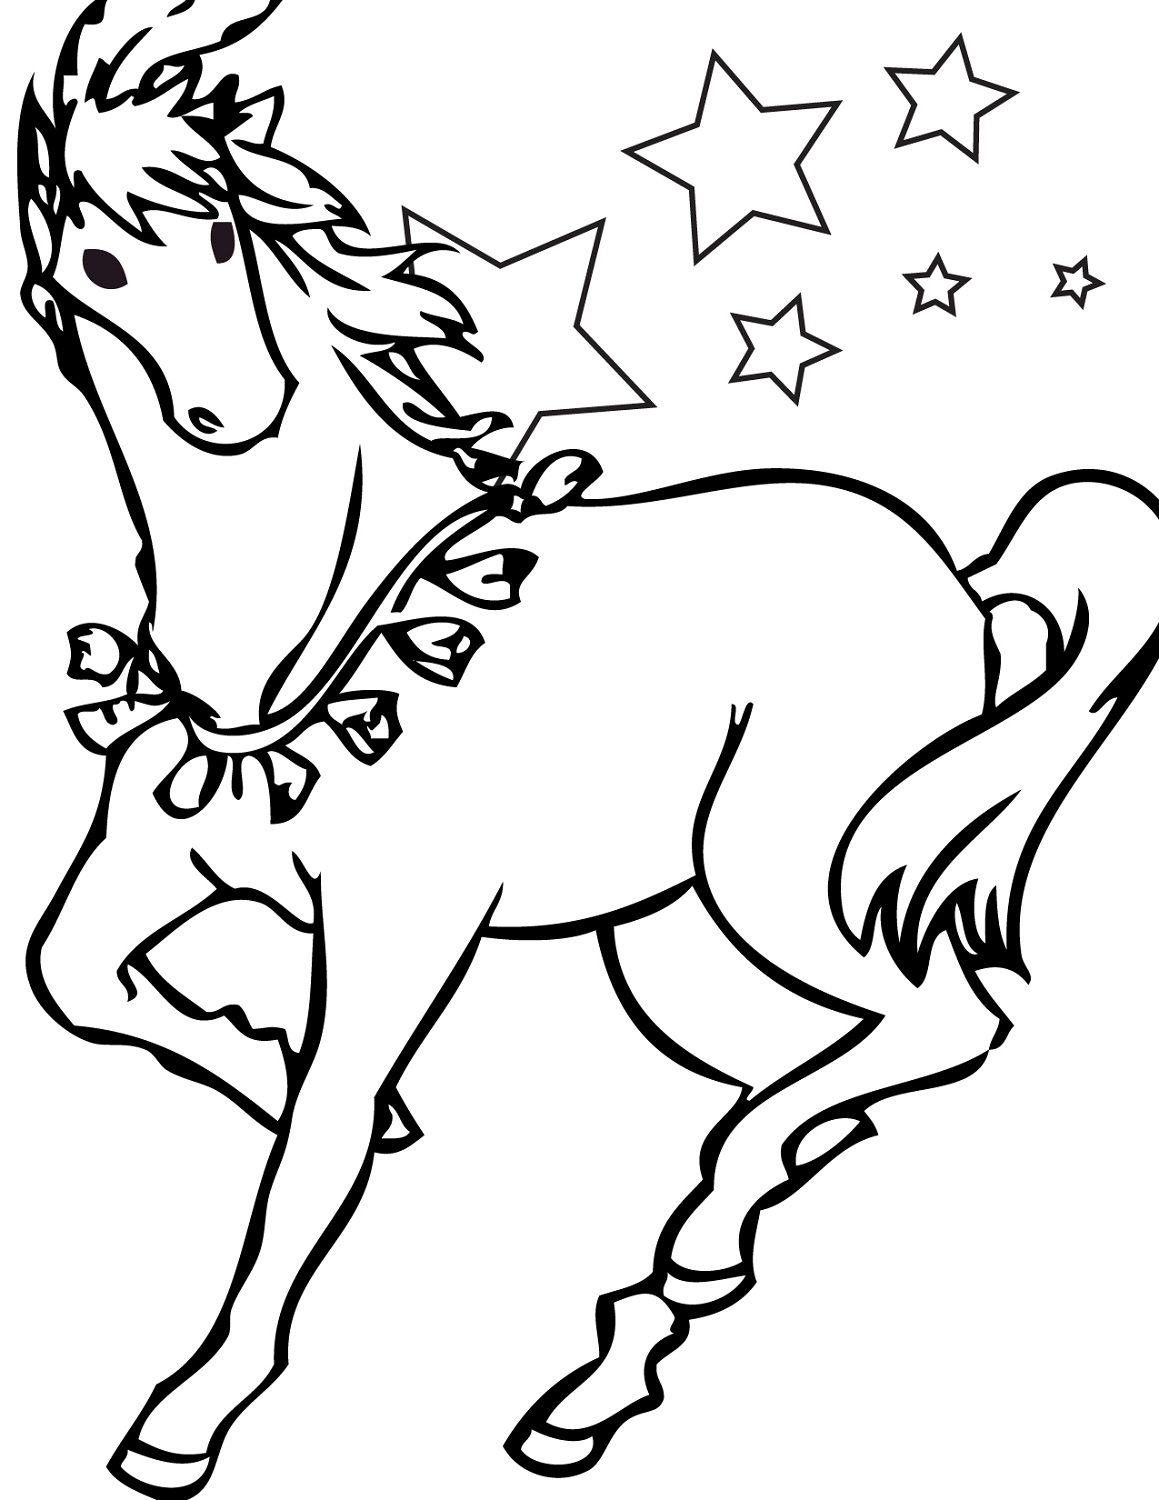 horse pictures to print 30 best horse coloring pages ideas weneedfun horse to pictures print